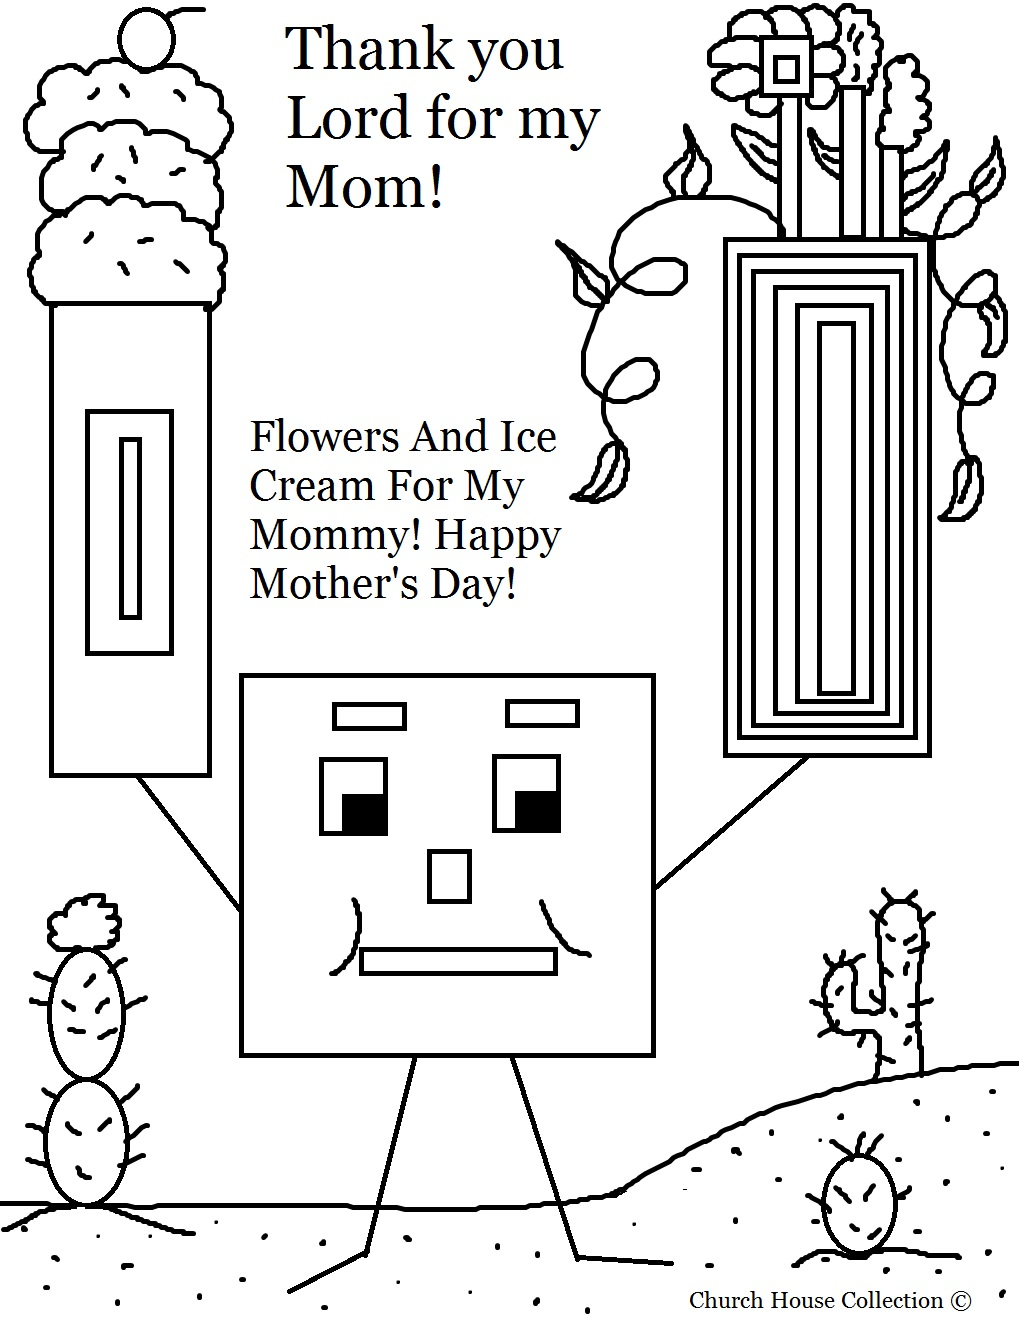 Mothers day coloring sheets for sunday school - Mother S Day Coloring Pages For Sunday School Mother S Day Square With Ice Cream And Flowers Coloring Page